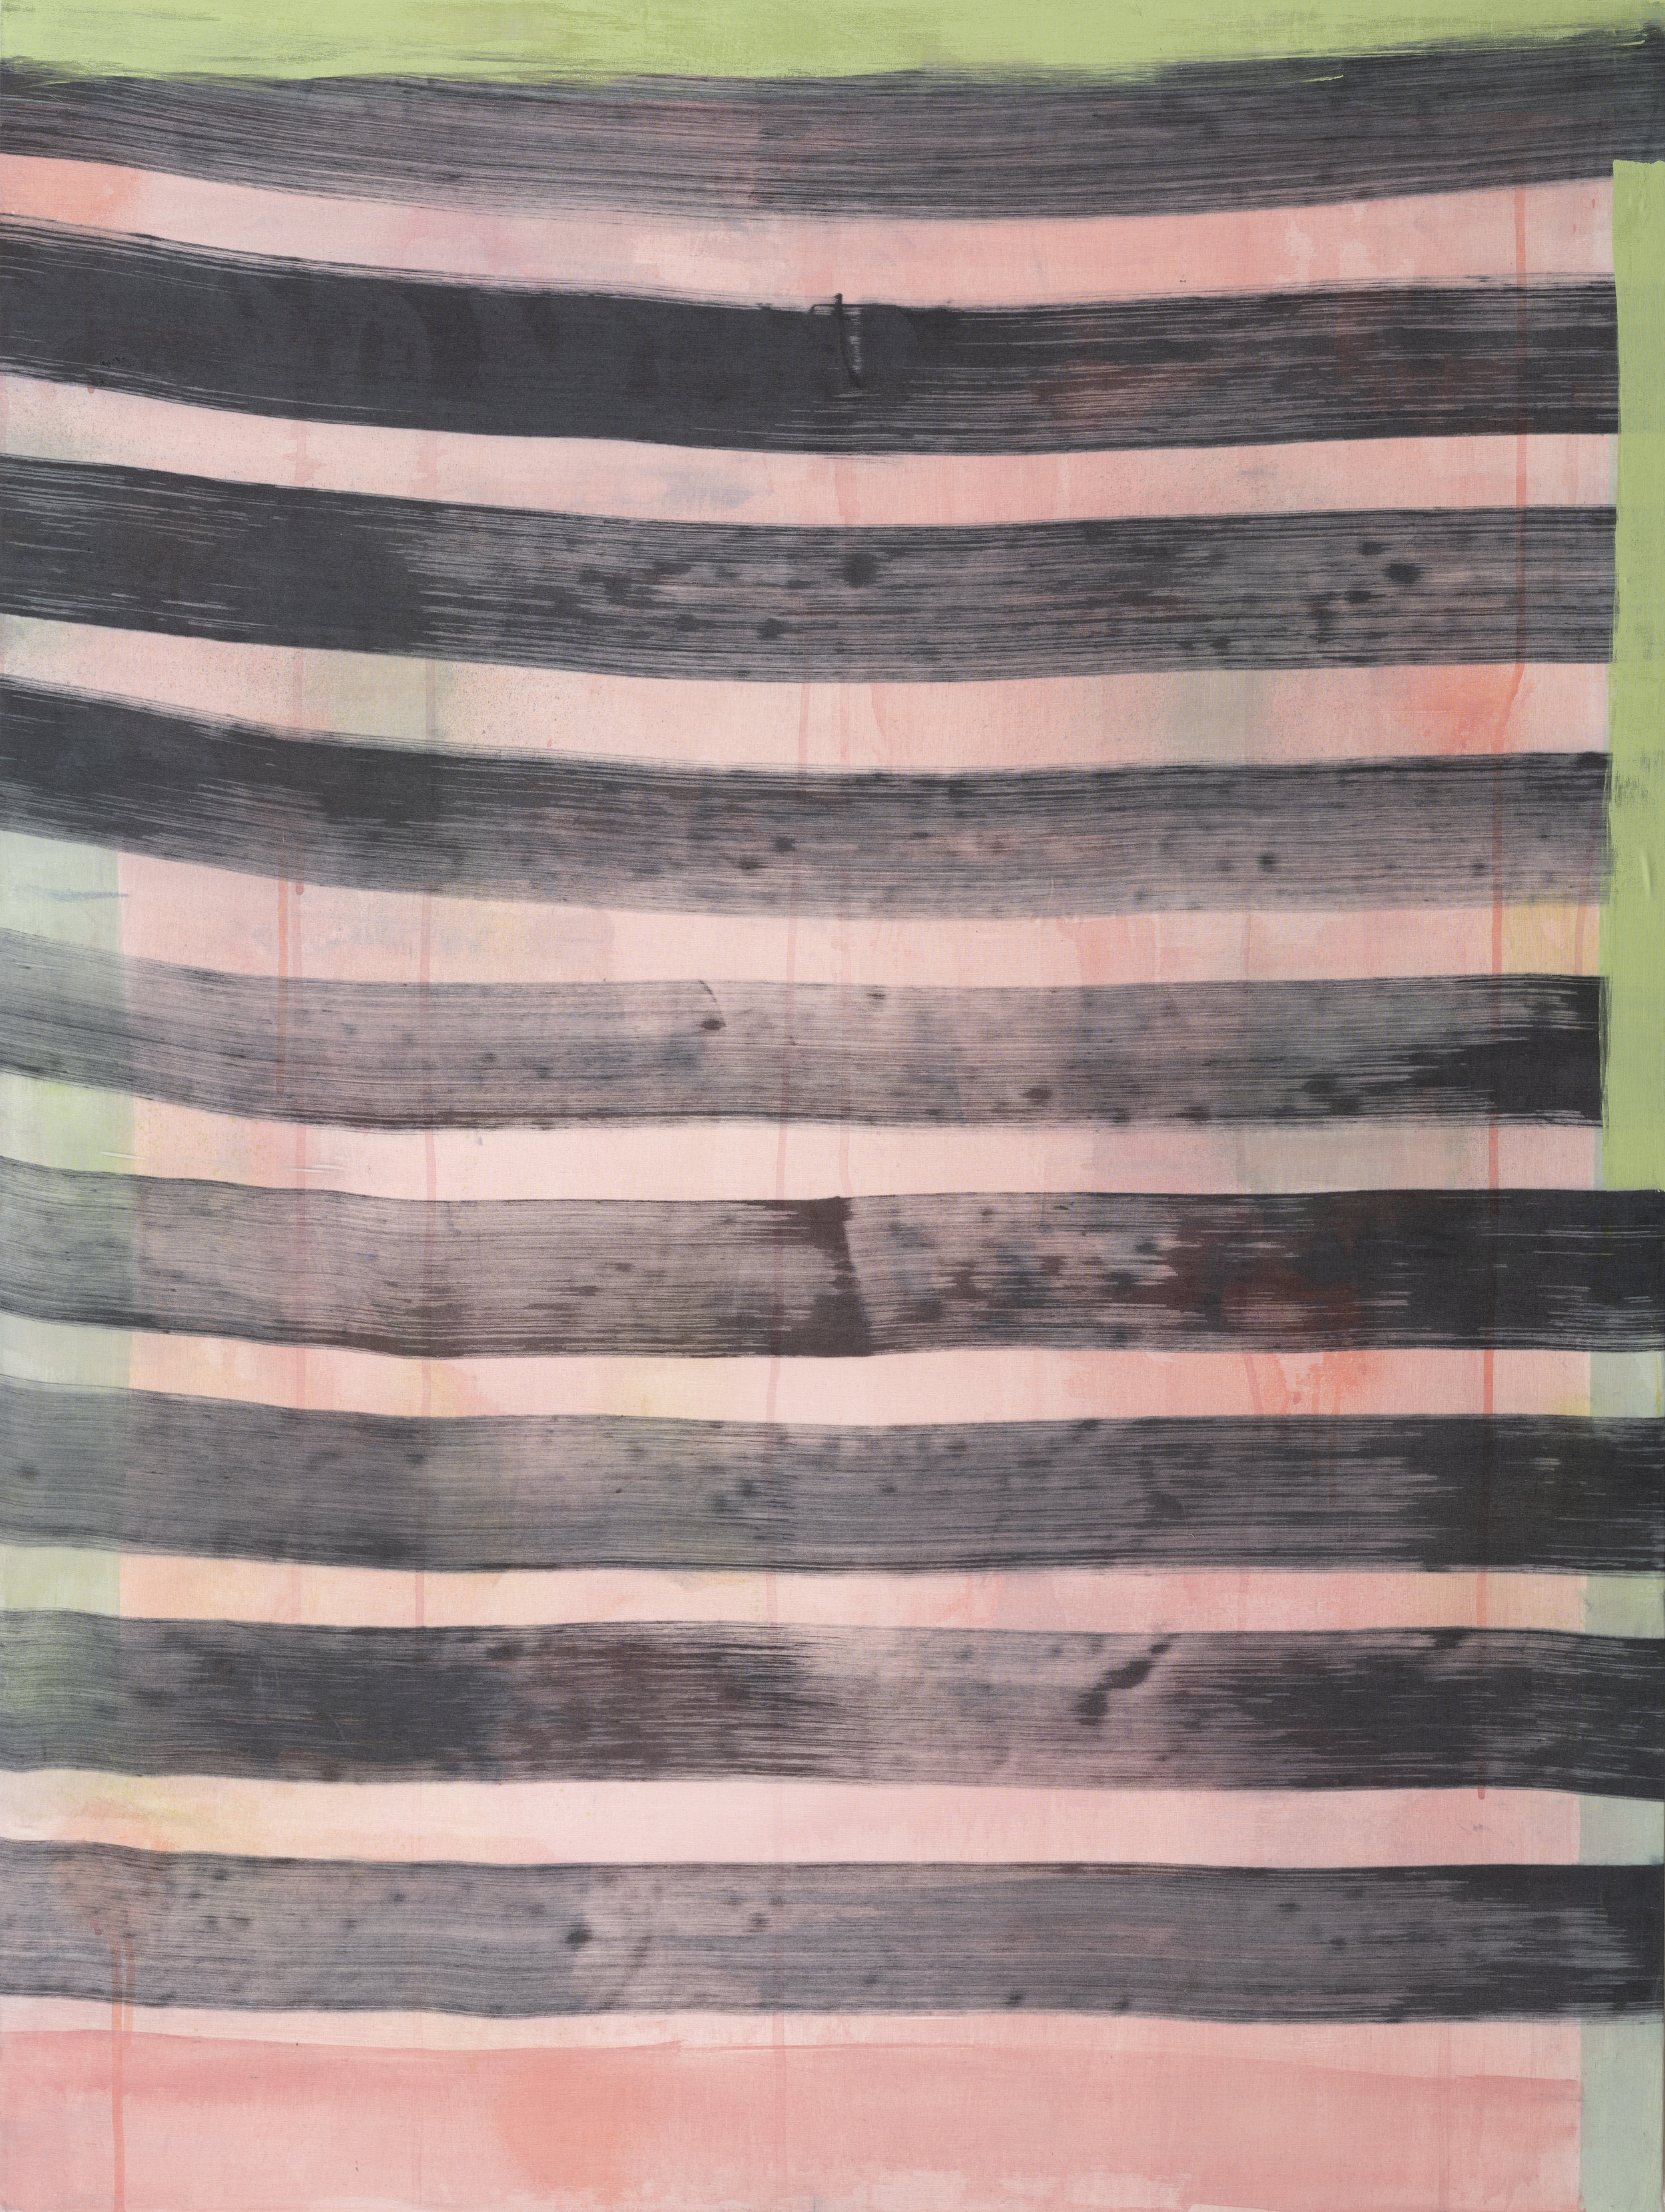 Stripes 1, 2018, acrylic, silk, dye on wood, 30 x 40 in, $,6000